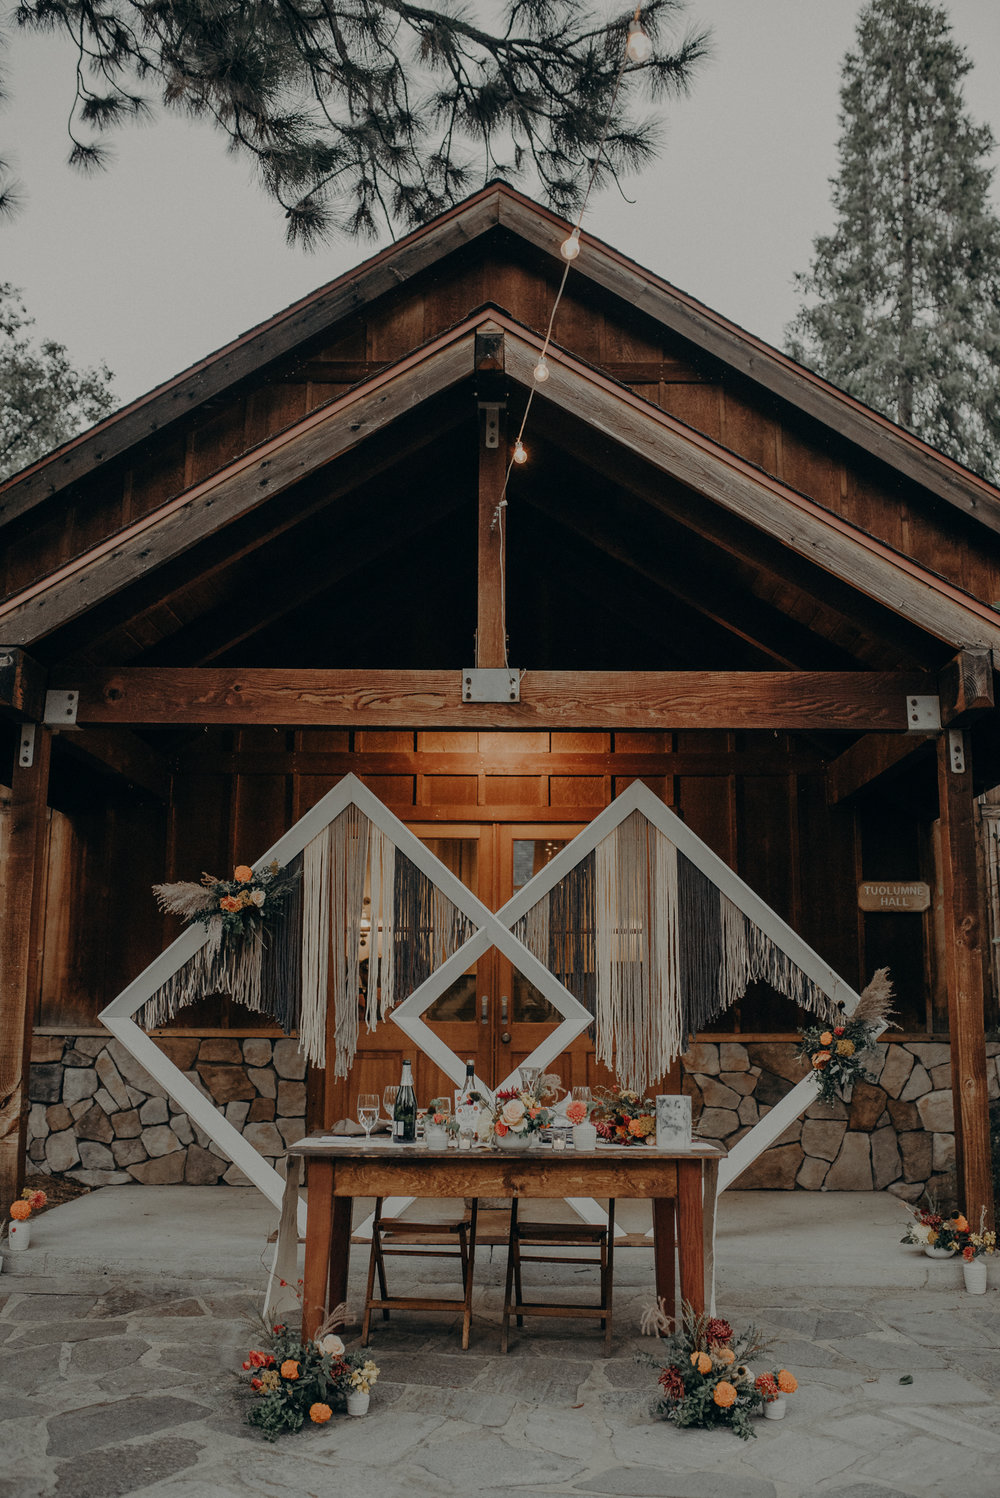 Yosemite Elopement Photographer - Evergreen Lodge Wedding Photographer - IsaiahAndTaylor.com-119.jpg